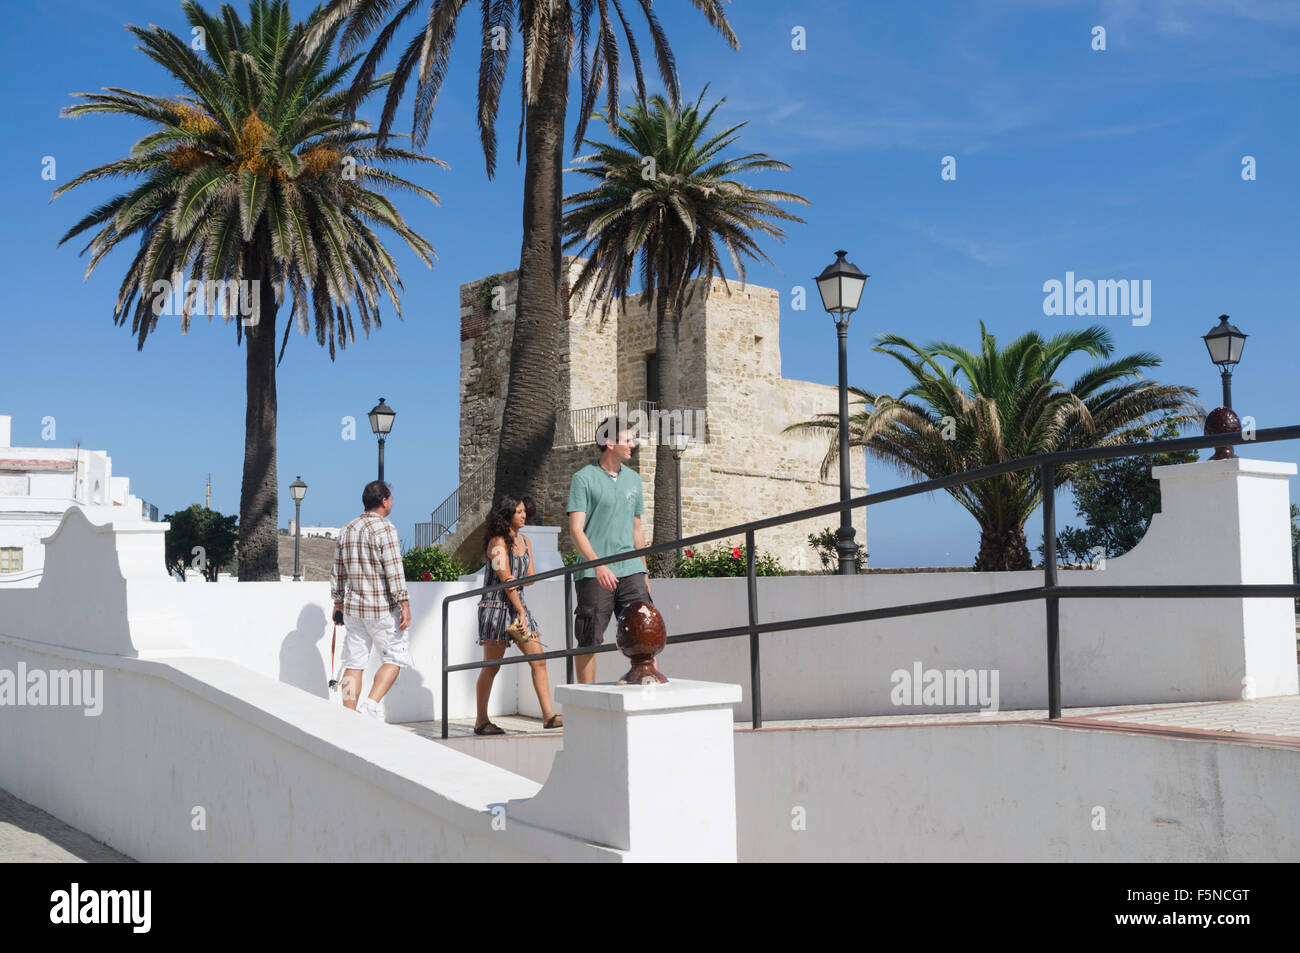 Miramar tower and gardens in Tarifa old town, Cadiz province, Andalusia, Spain Stock Photo